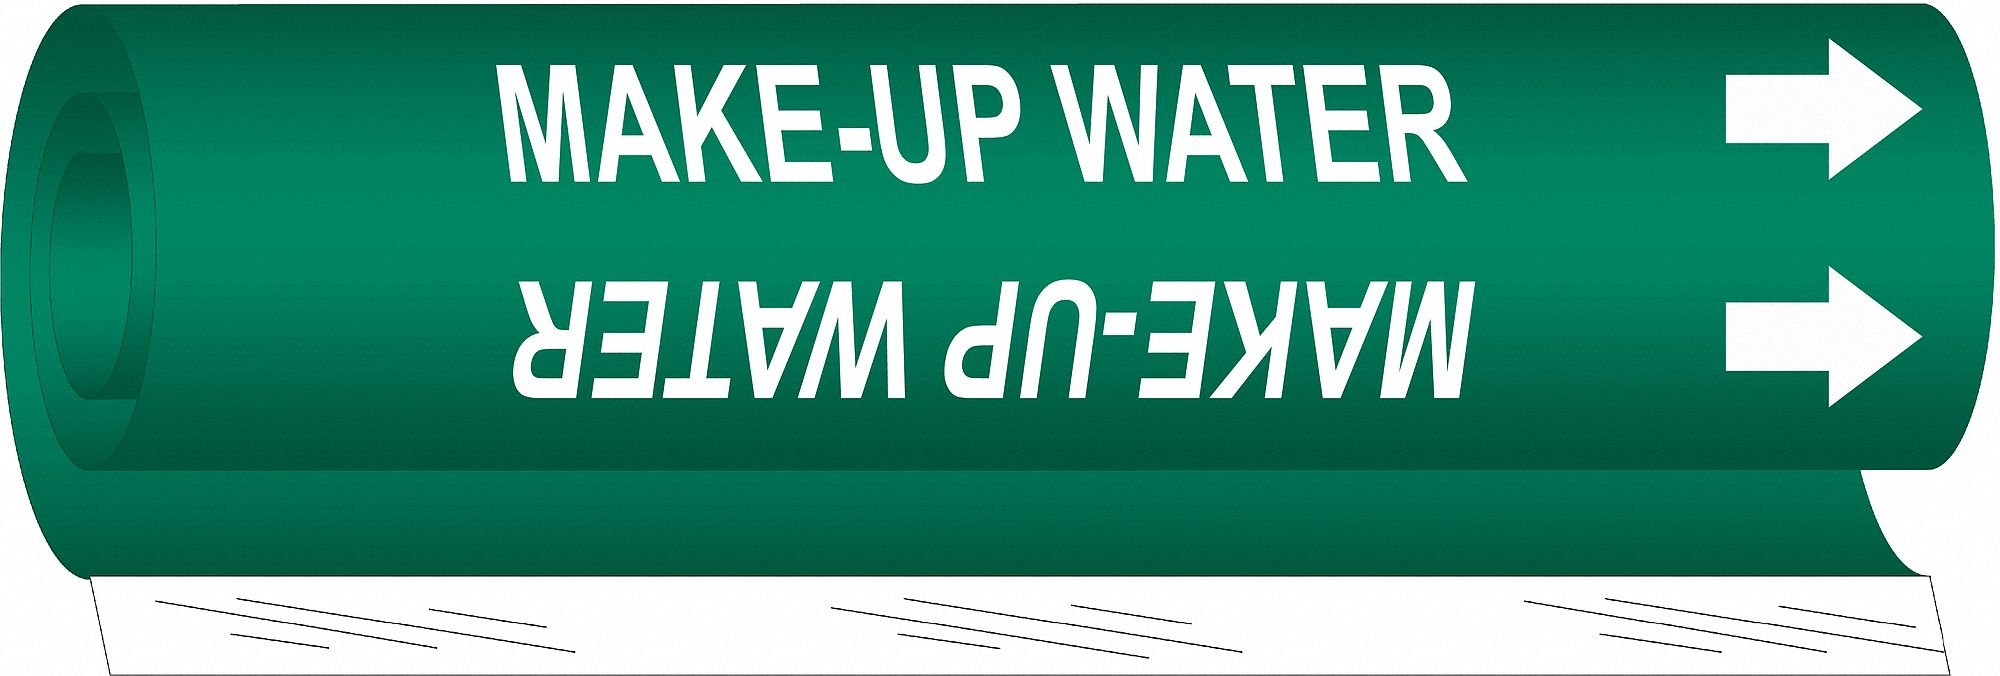 Pipe Mrkr,Make Up Water,2-1/2to7-7/8 In